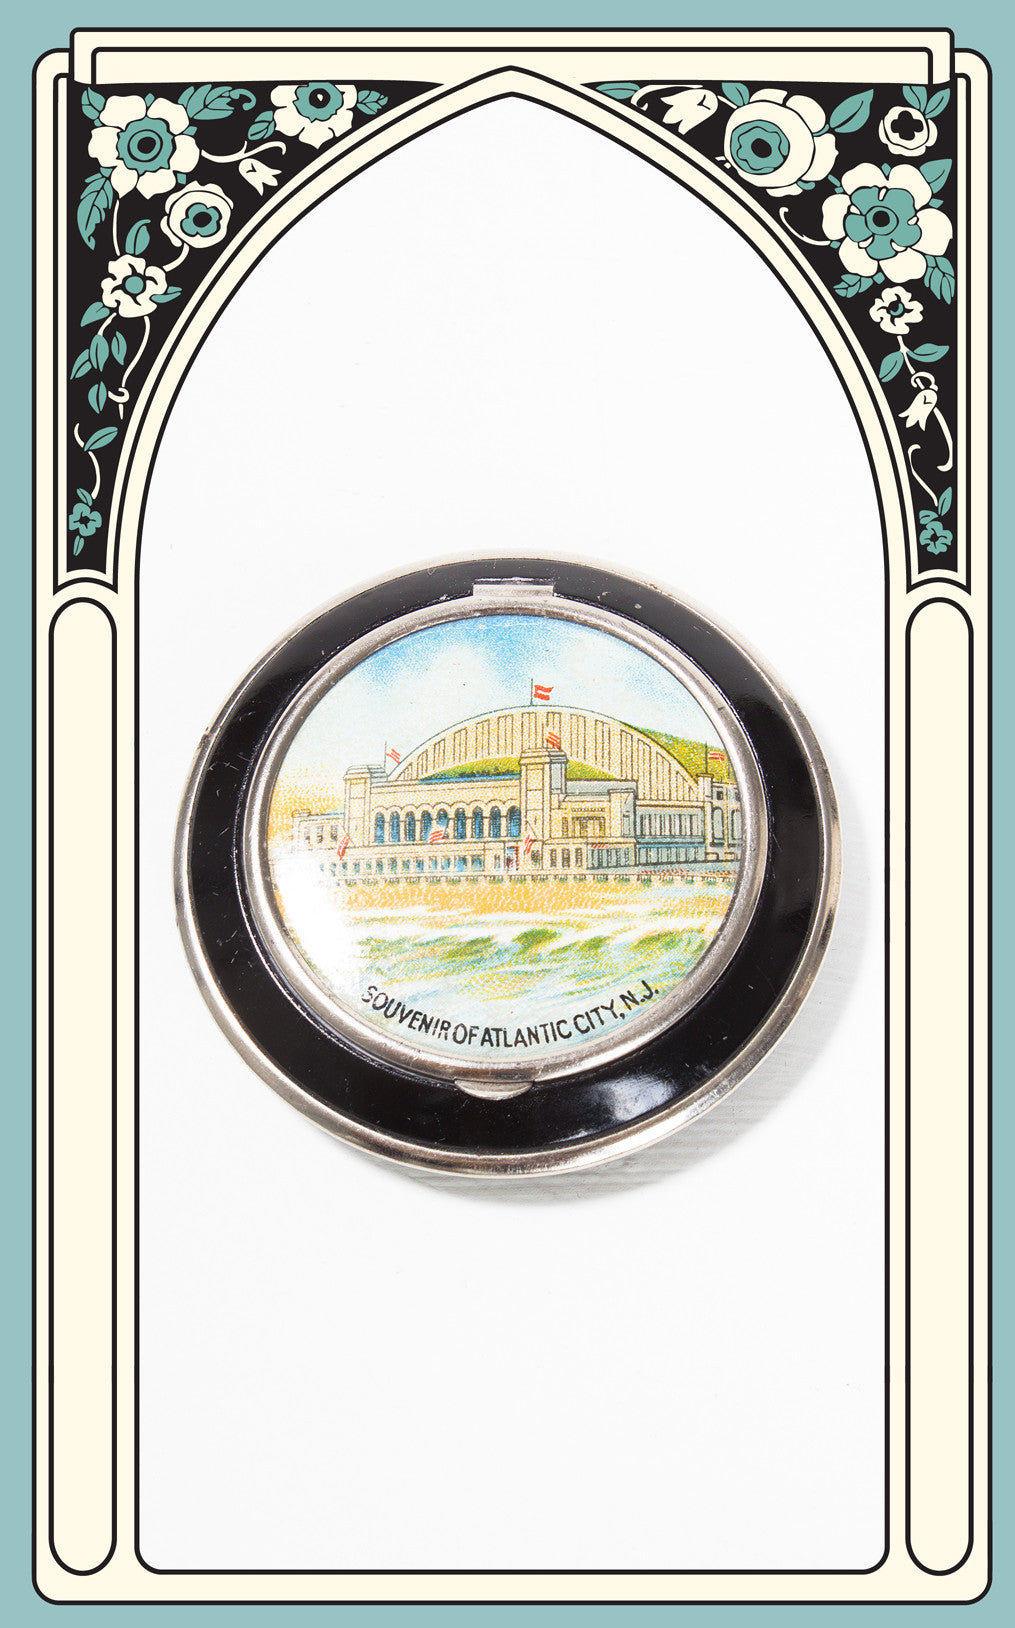 1940s Atlantic City Auditorium and Convention Hall Souvenir Compact